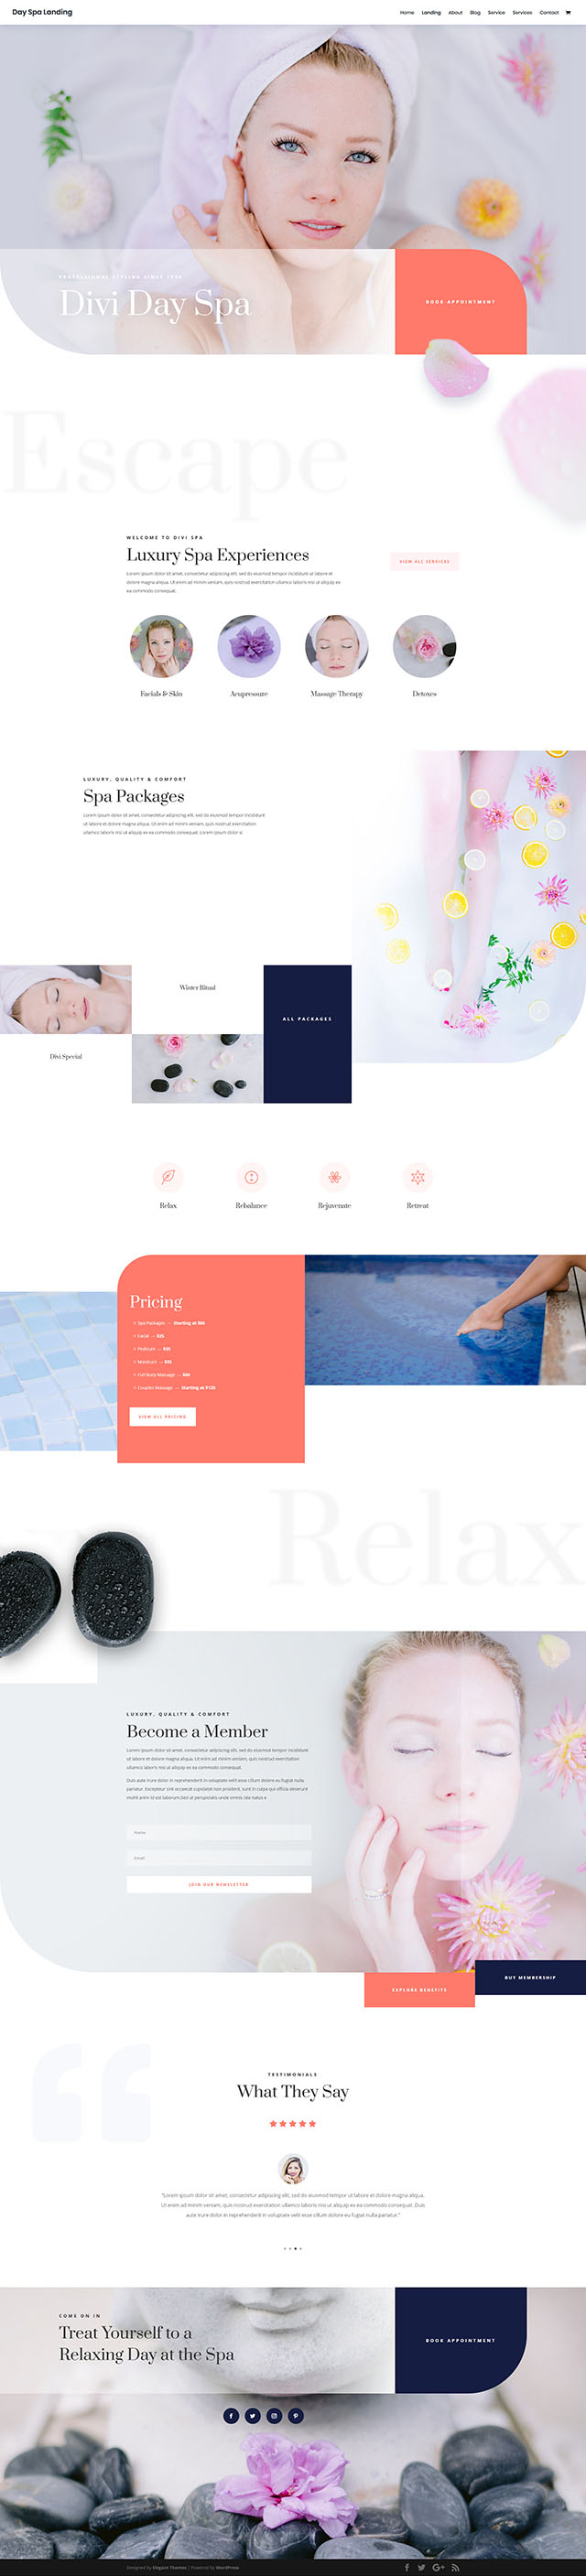 FREE Day Spa Layout Pack for Divi 免費下載水療示範頁面組合